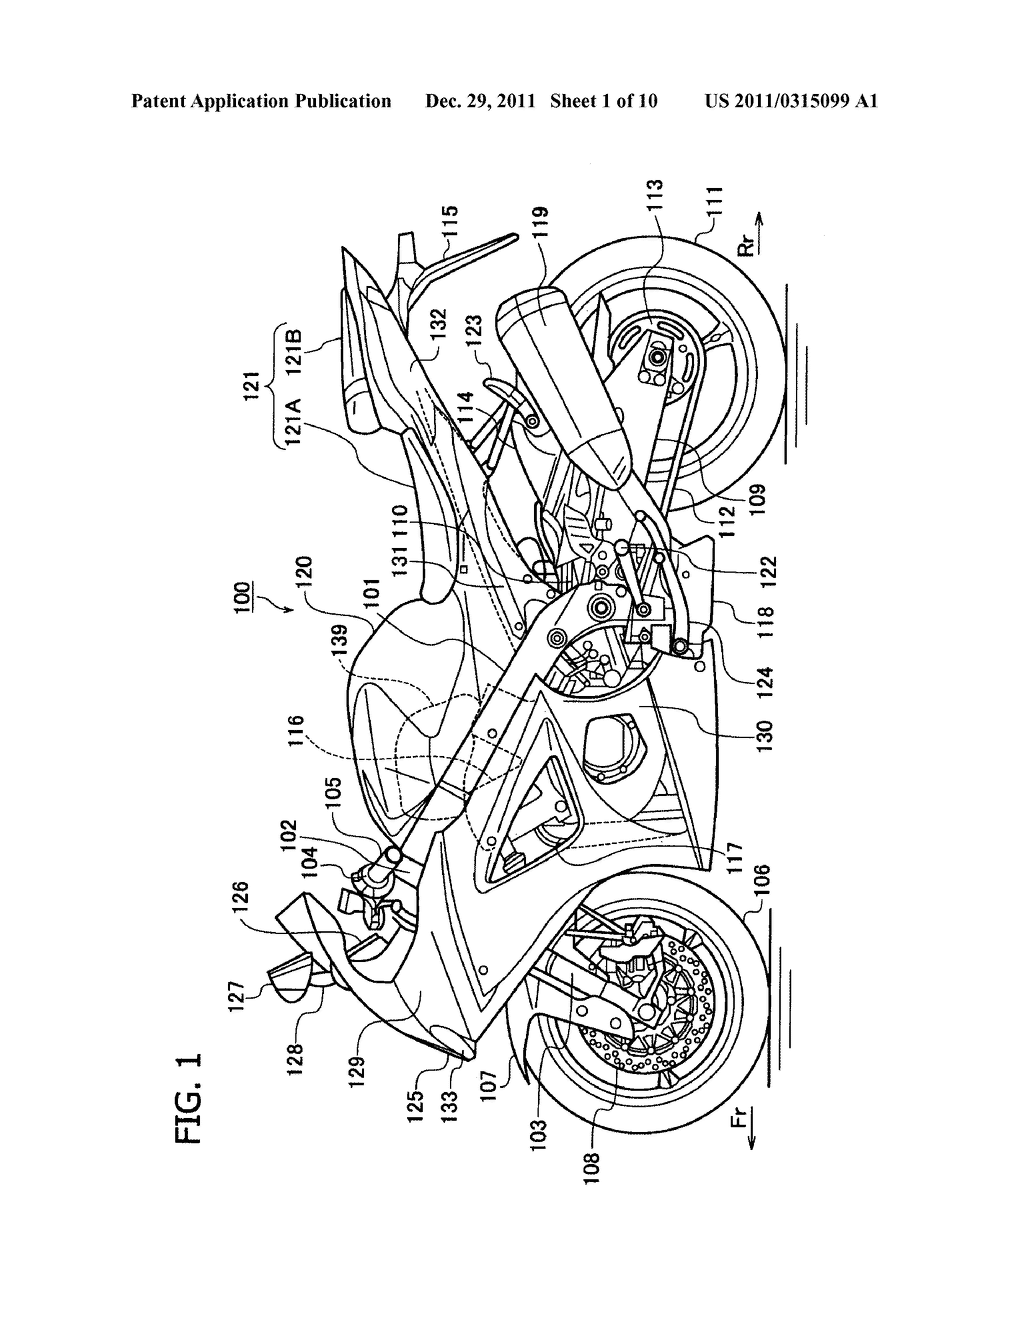 fuel feed system for v type engine diagram schematic and image 02 rh patentsencyclopedia com